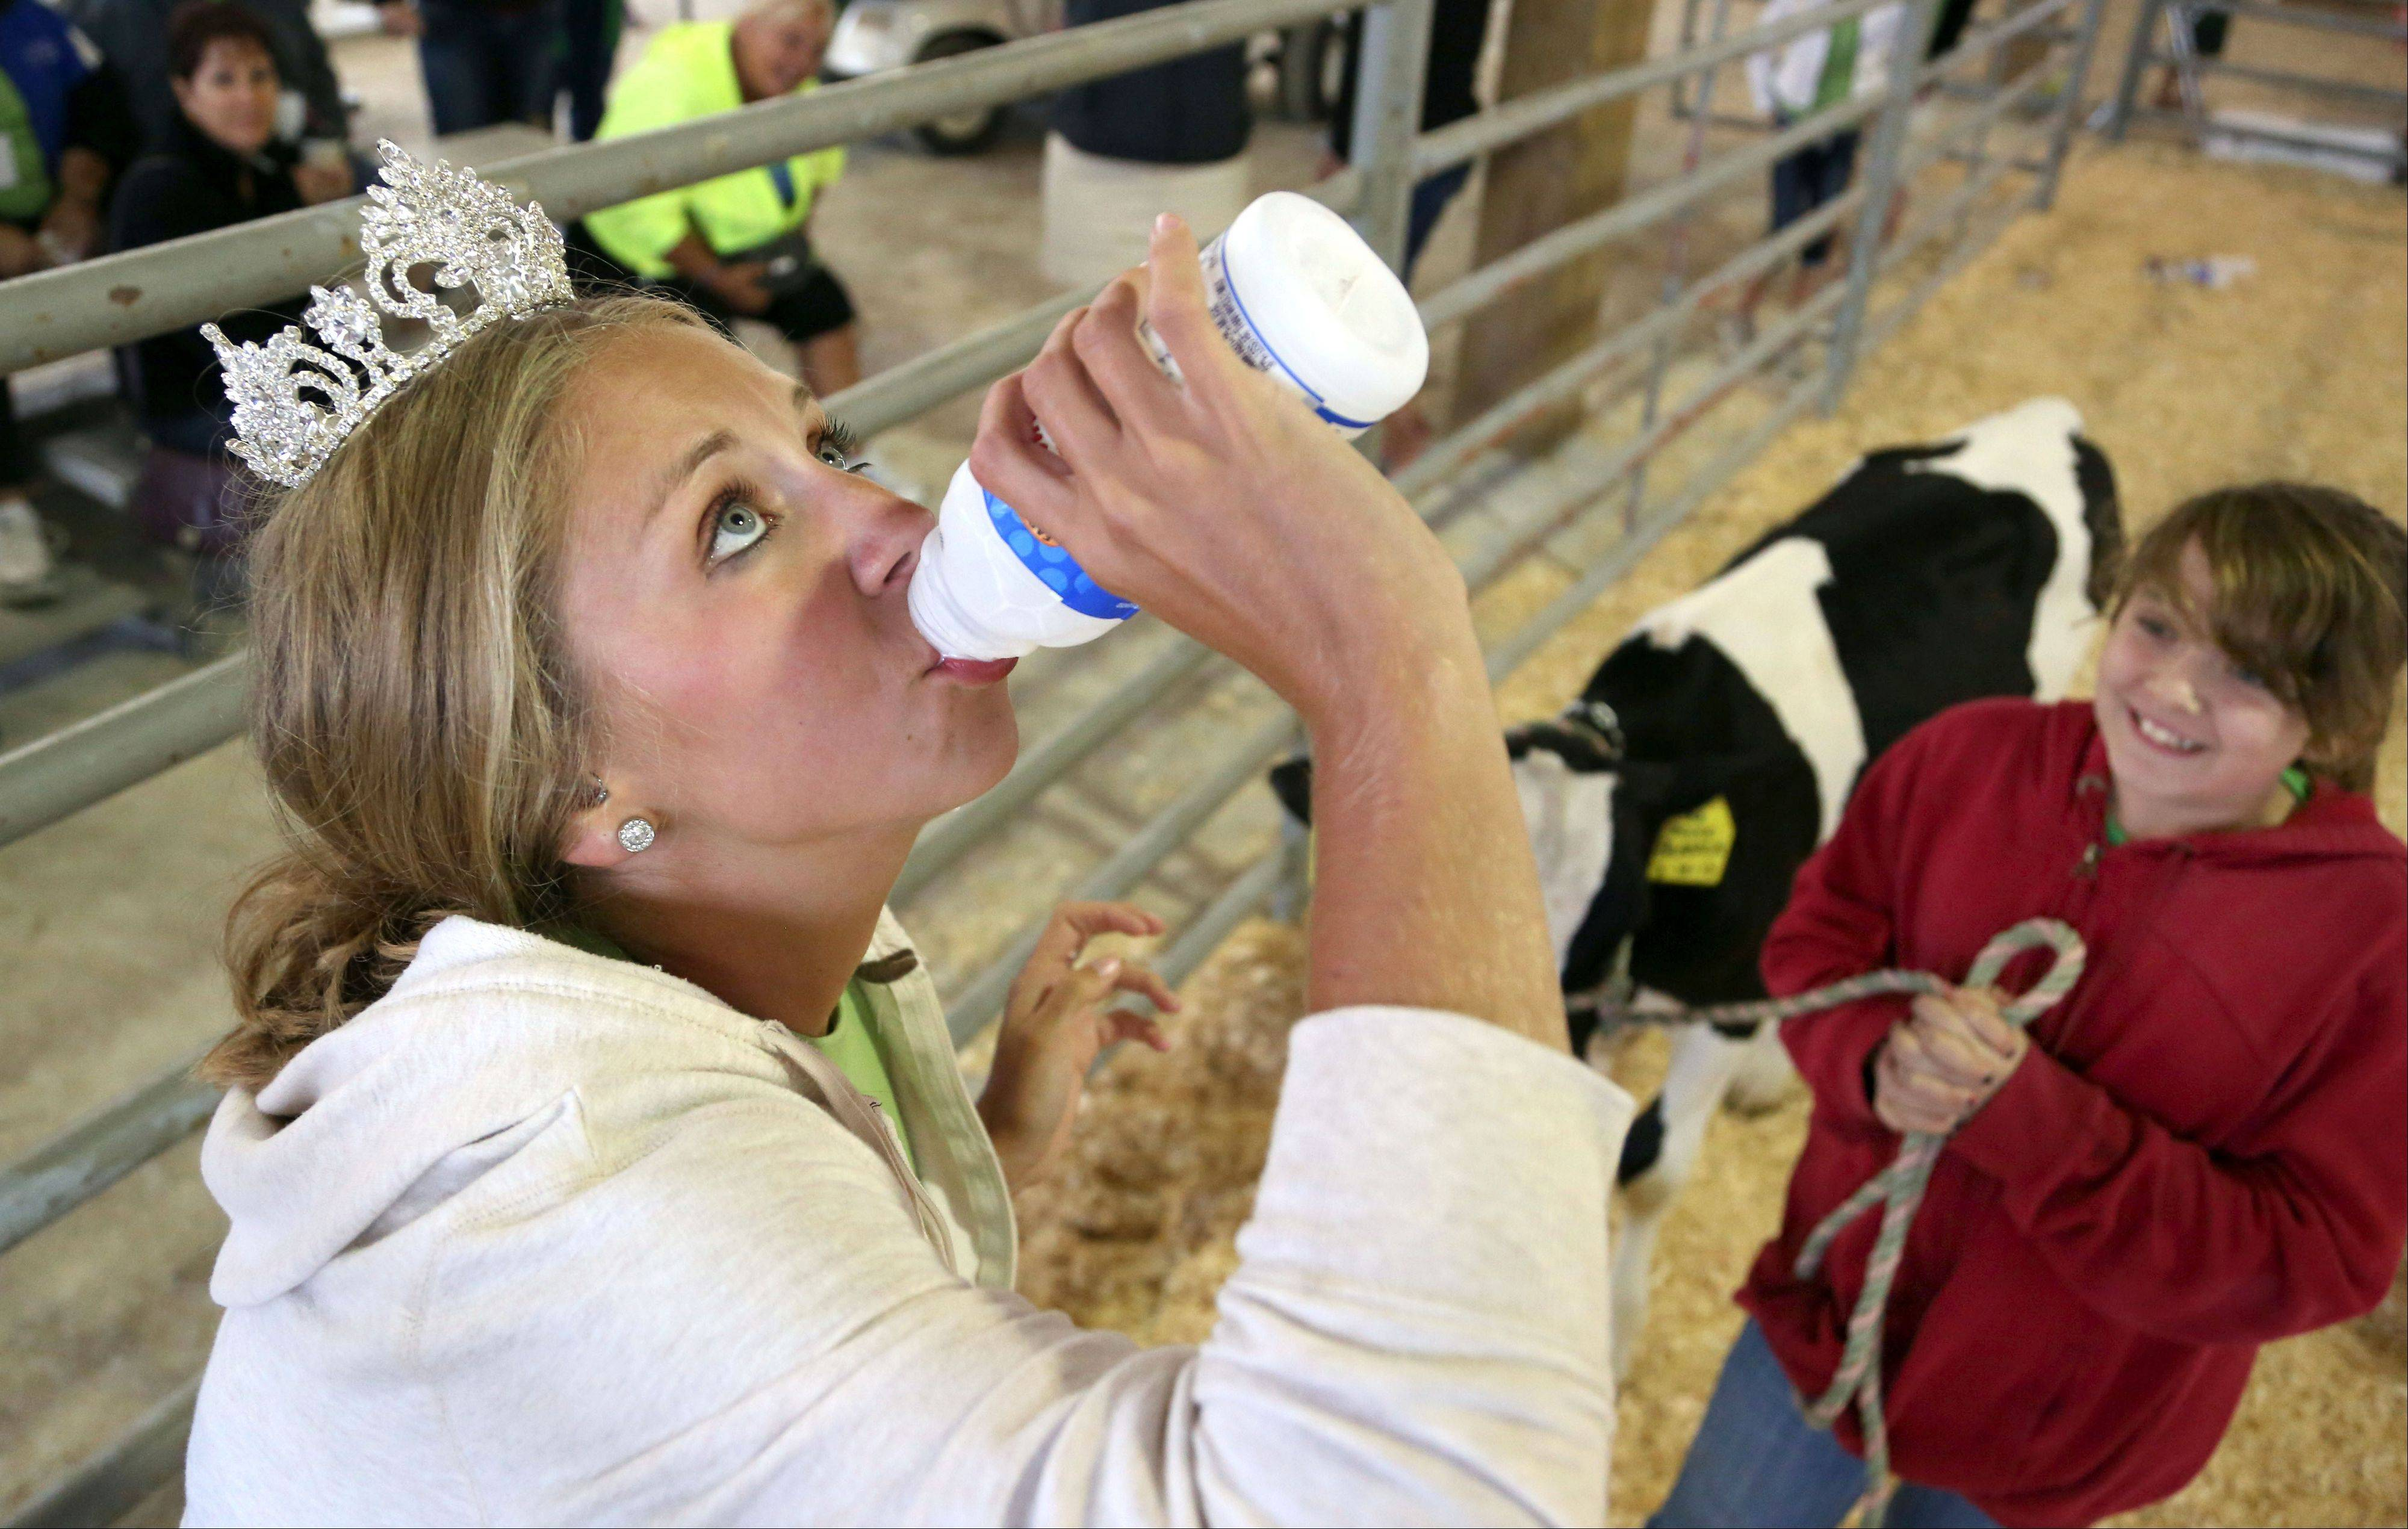 Miss Lake County Fair Queen Meghan Opolka, left, of Antioch, chugs milk as 11-year-old Sara Lincicome of Beach Park, looks on during Friday�s Crazy Cow Relay in the dairy barn at the Lake County Fair in Grayslake.